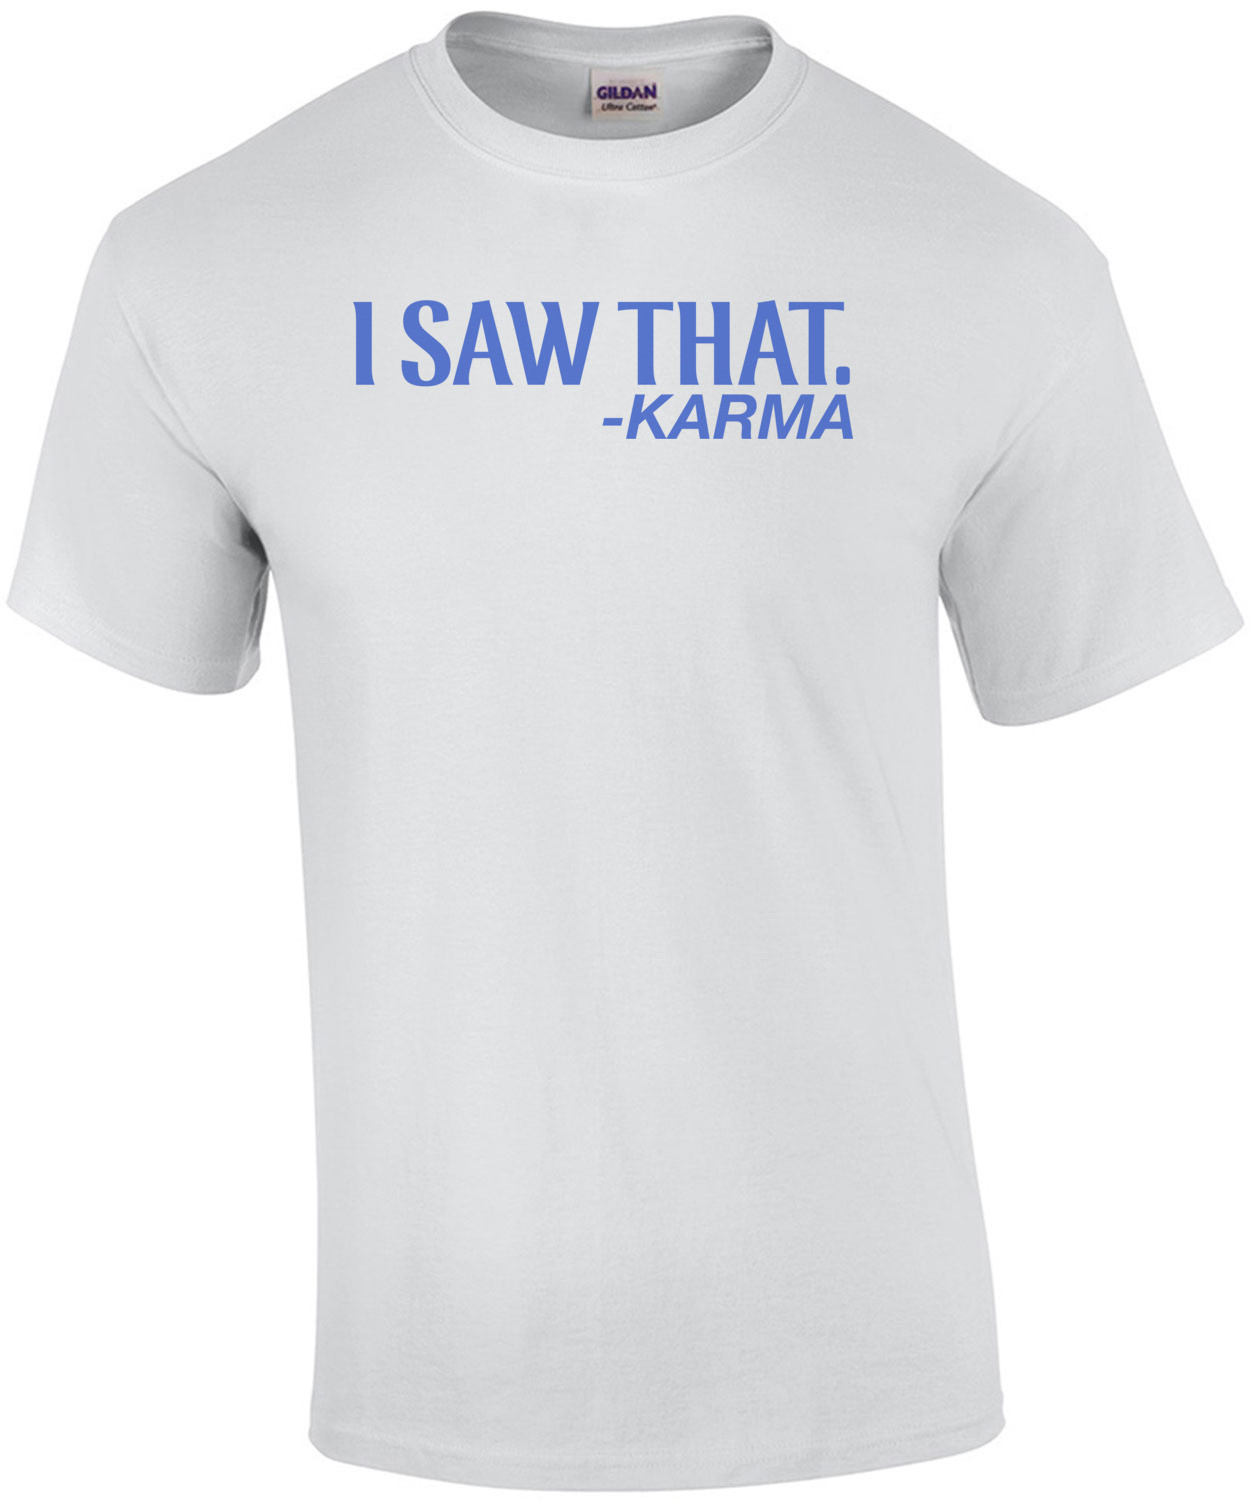 I Saw That -Karma T-Shirt